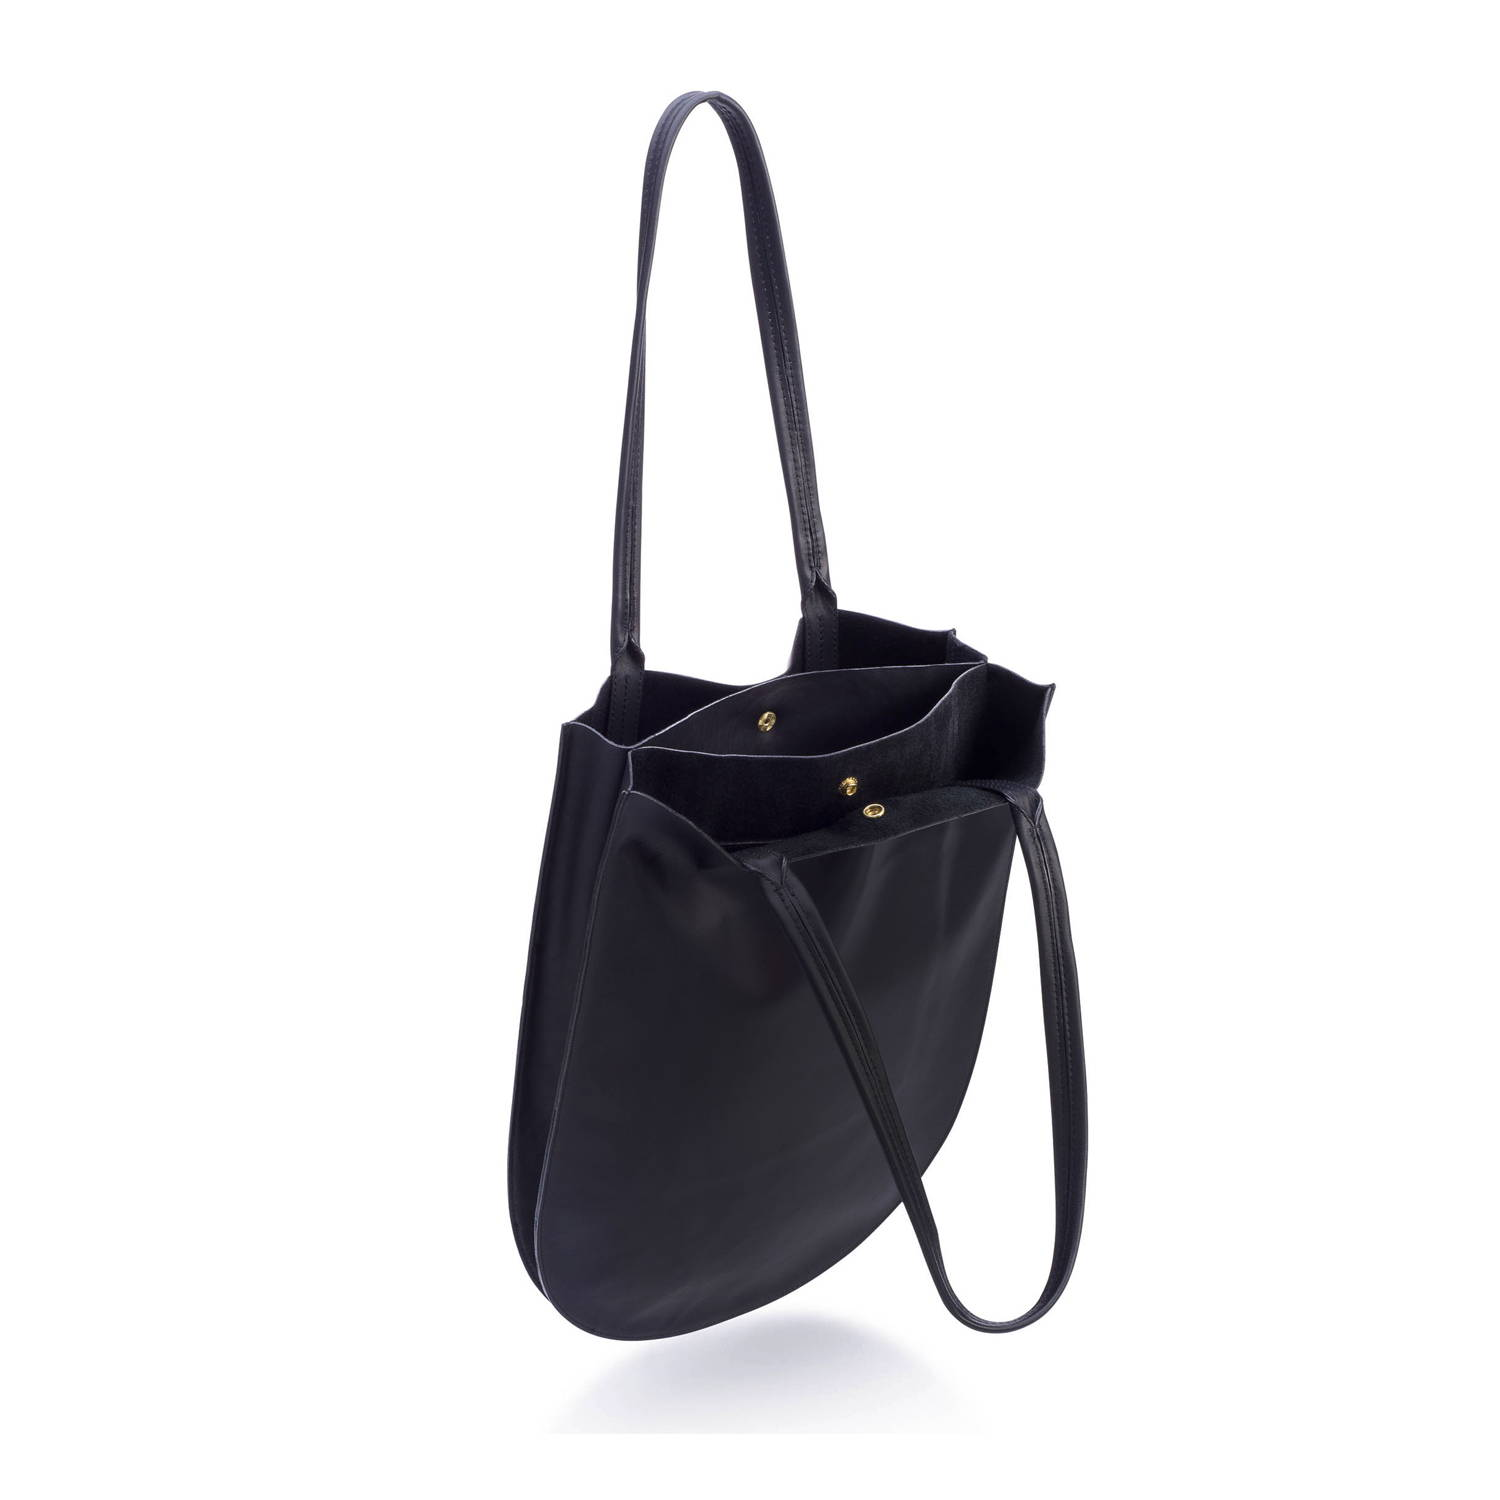 half moon tote in black leather